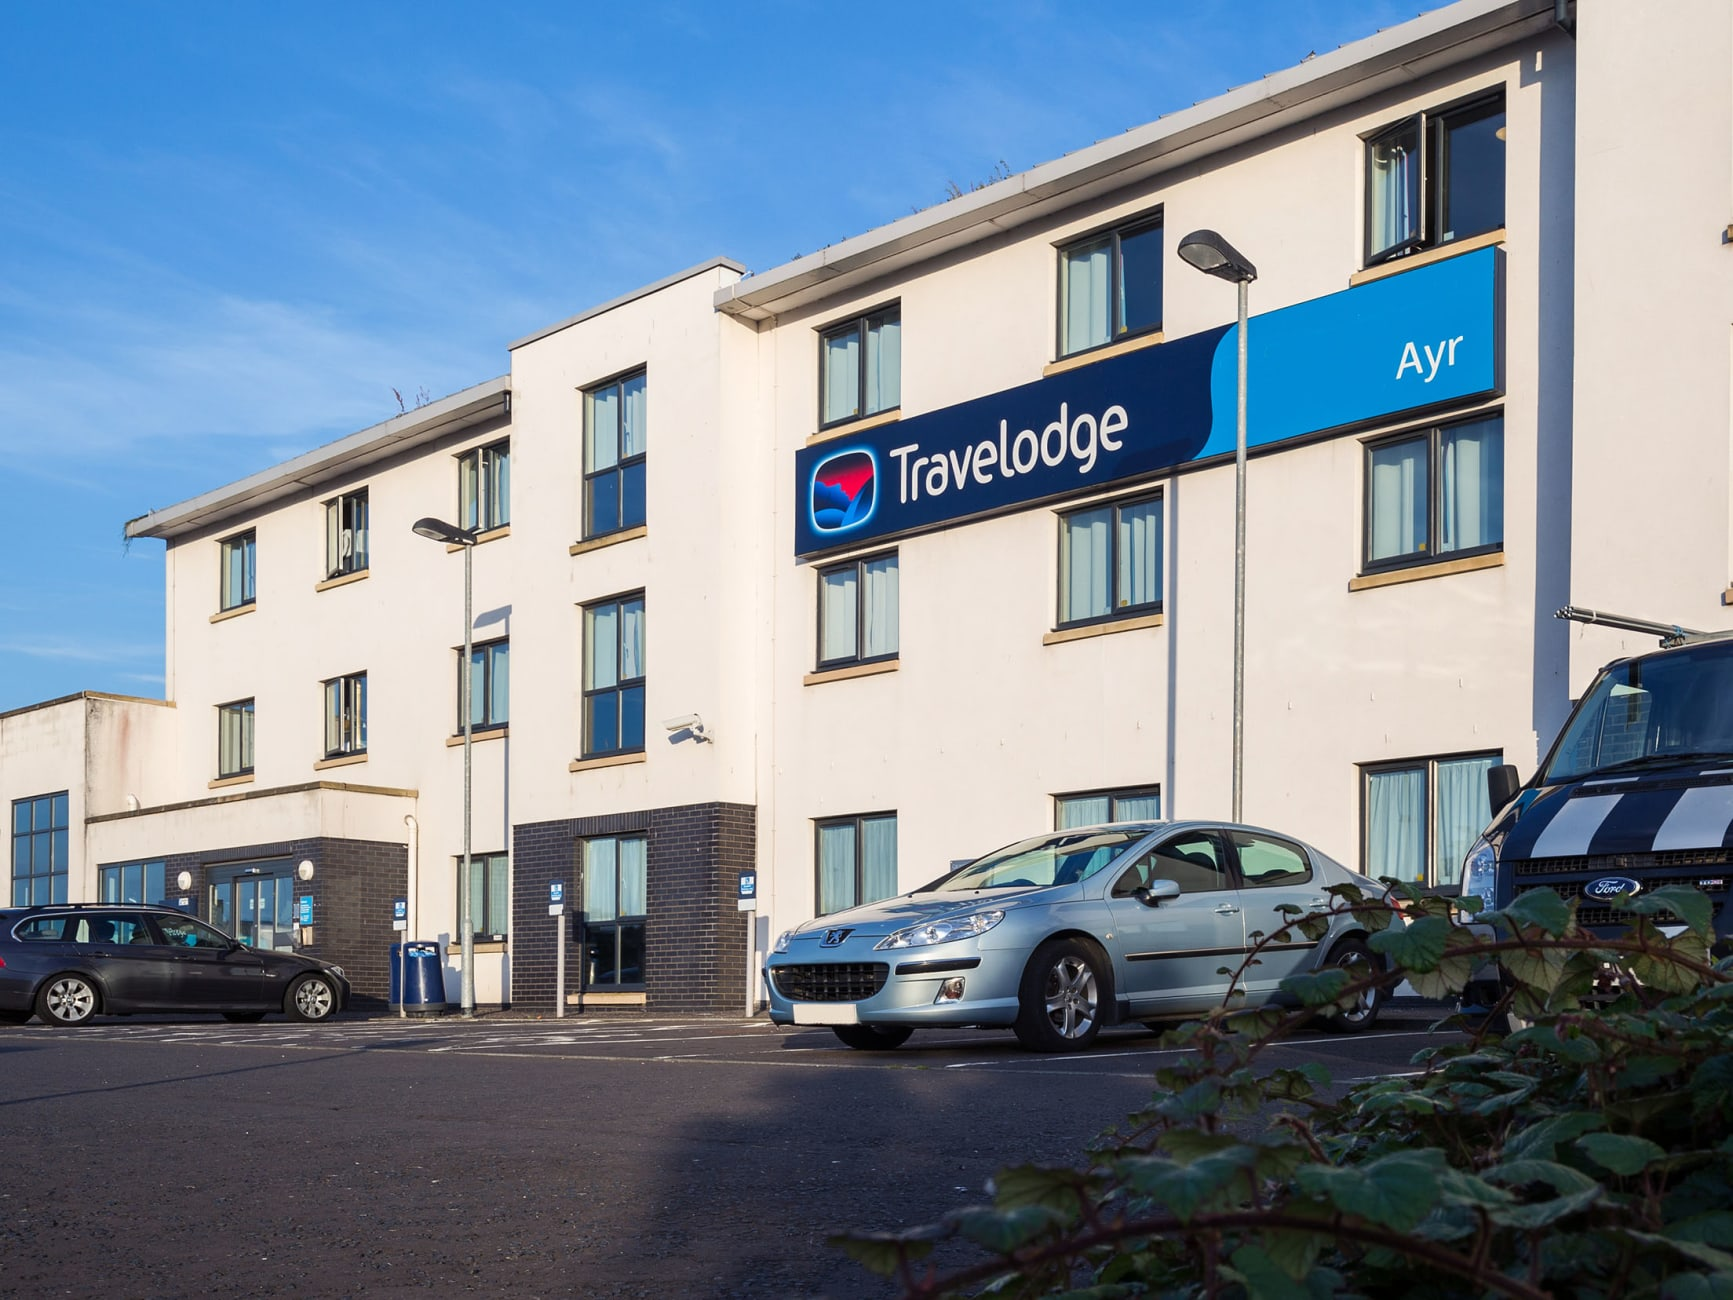 Hotel Travelodge Ayr Ayr Trivagocouk